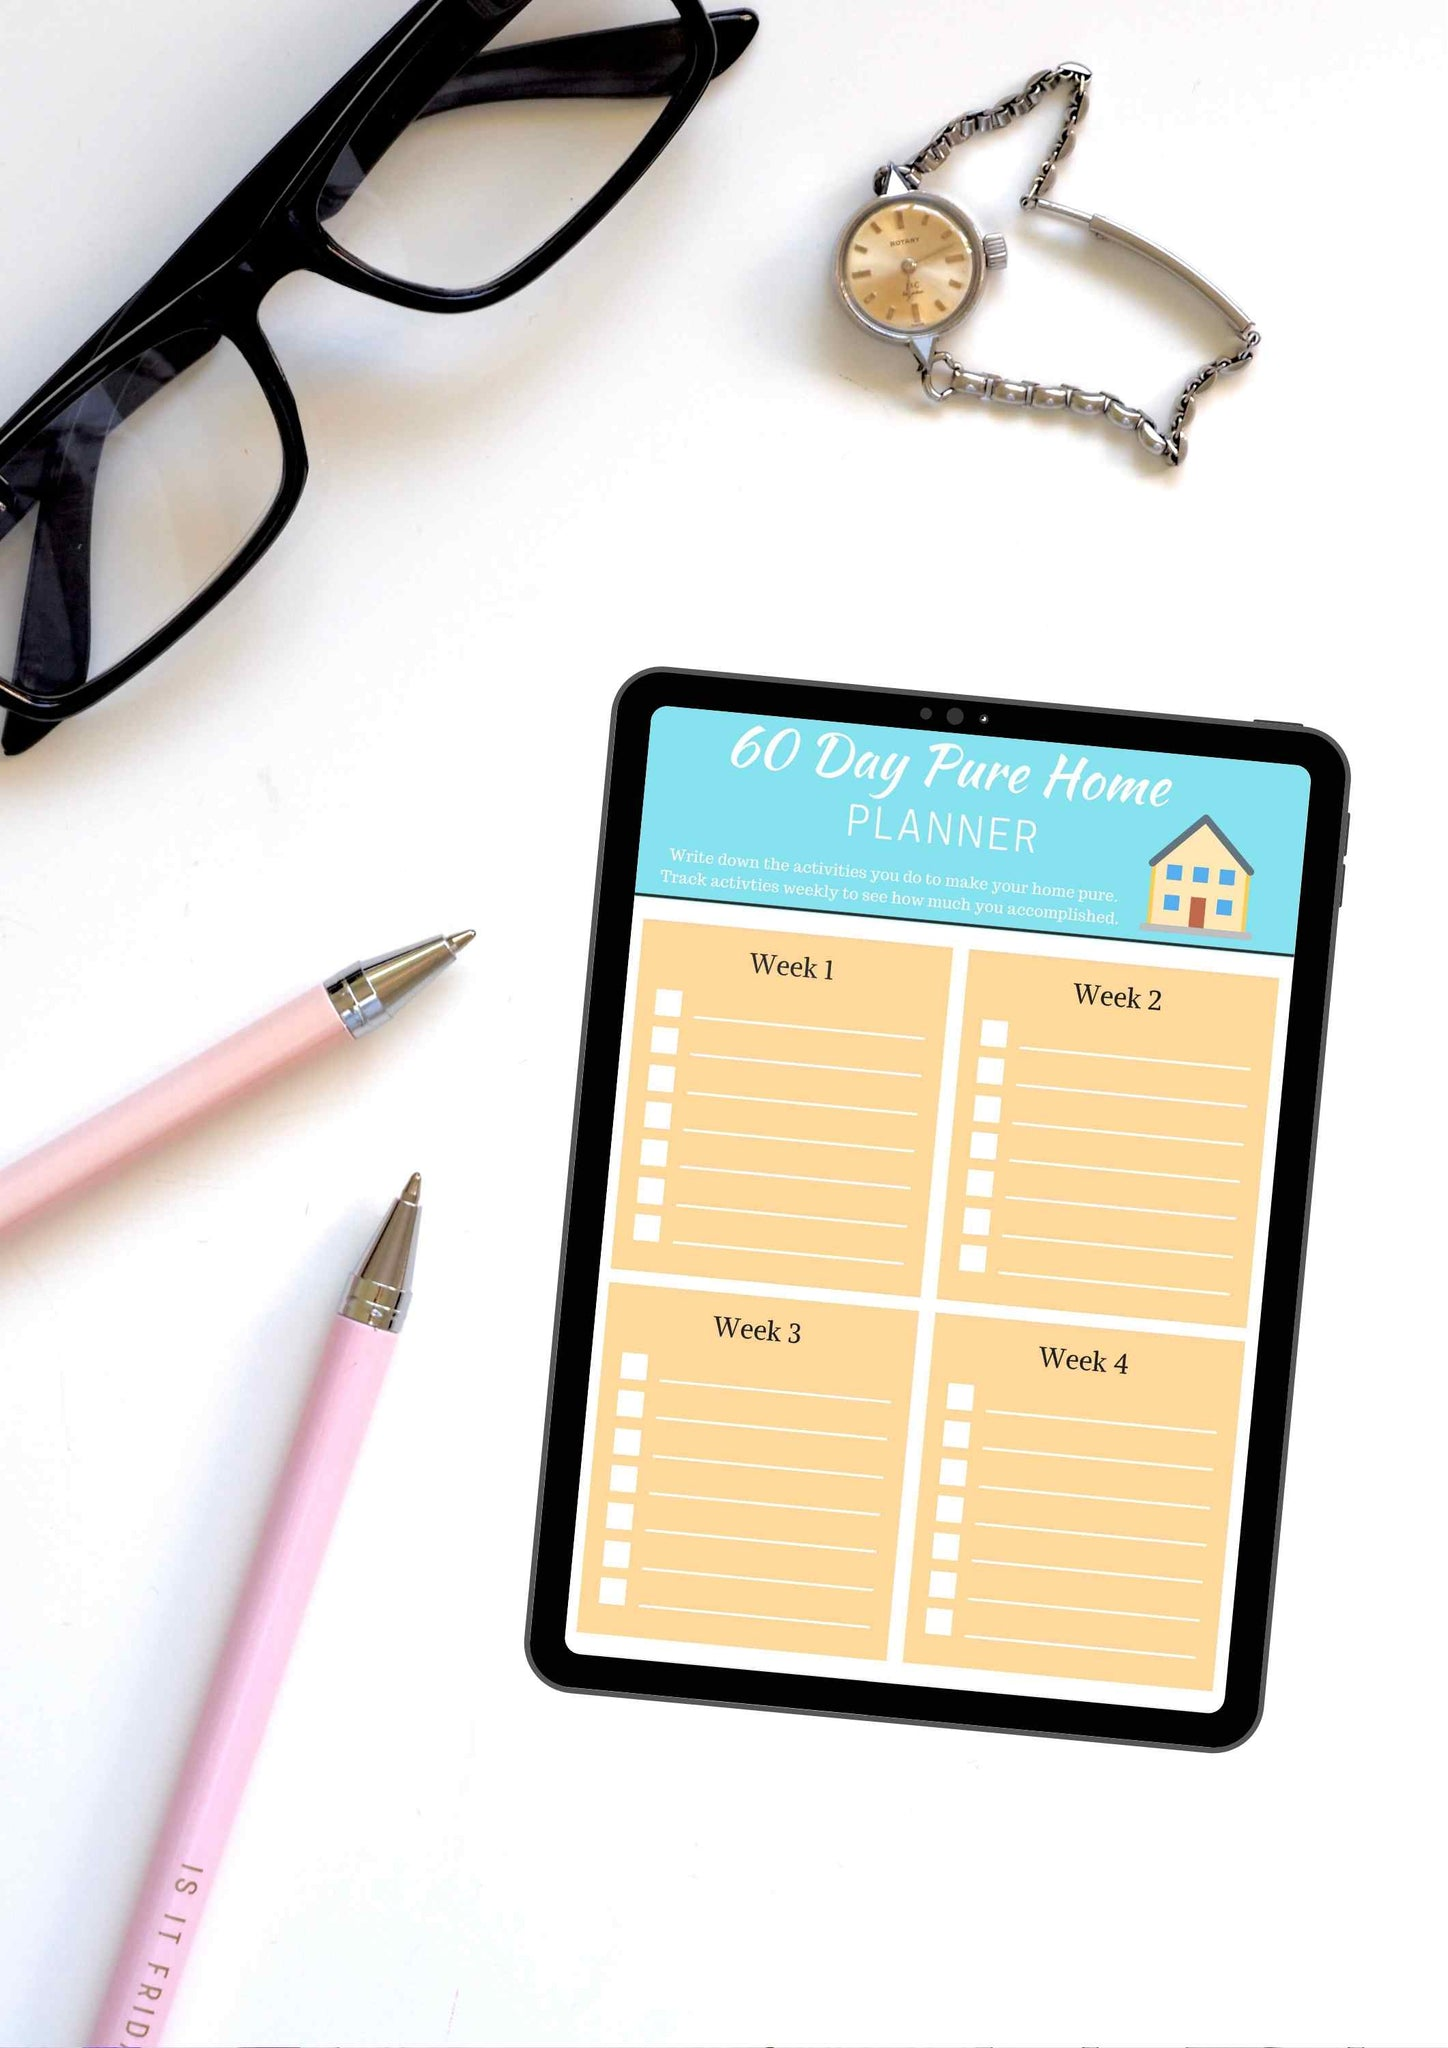 Pure Home Planner